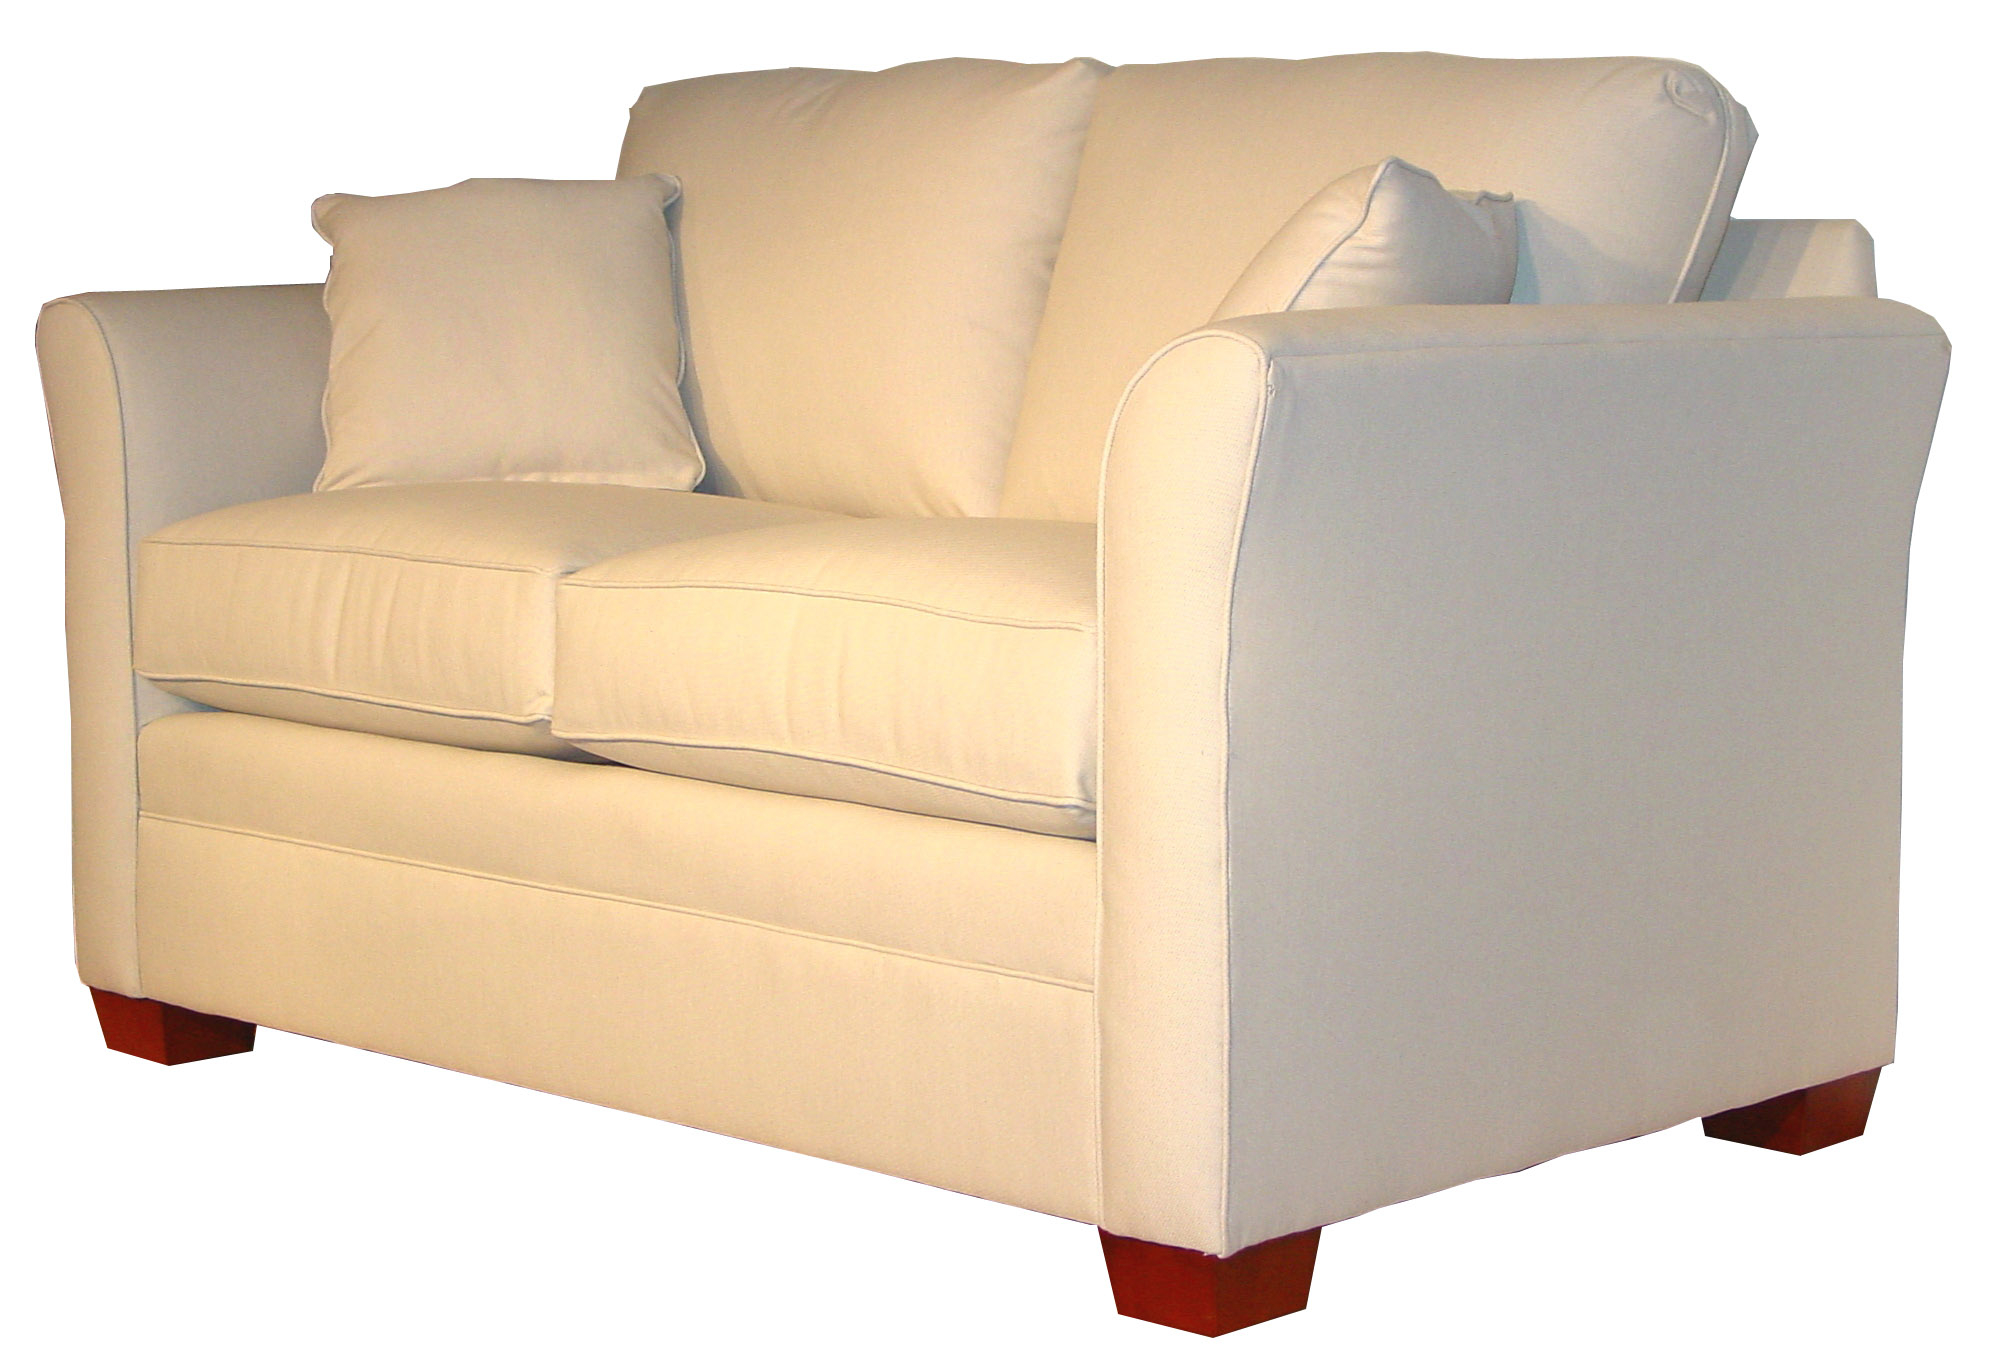 Picture of: Leather Loveseat Sleepers You Ll Love In 2020 Visualhunt